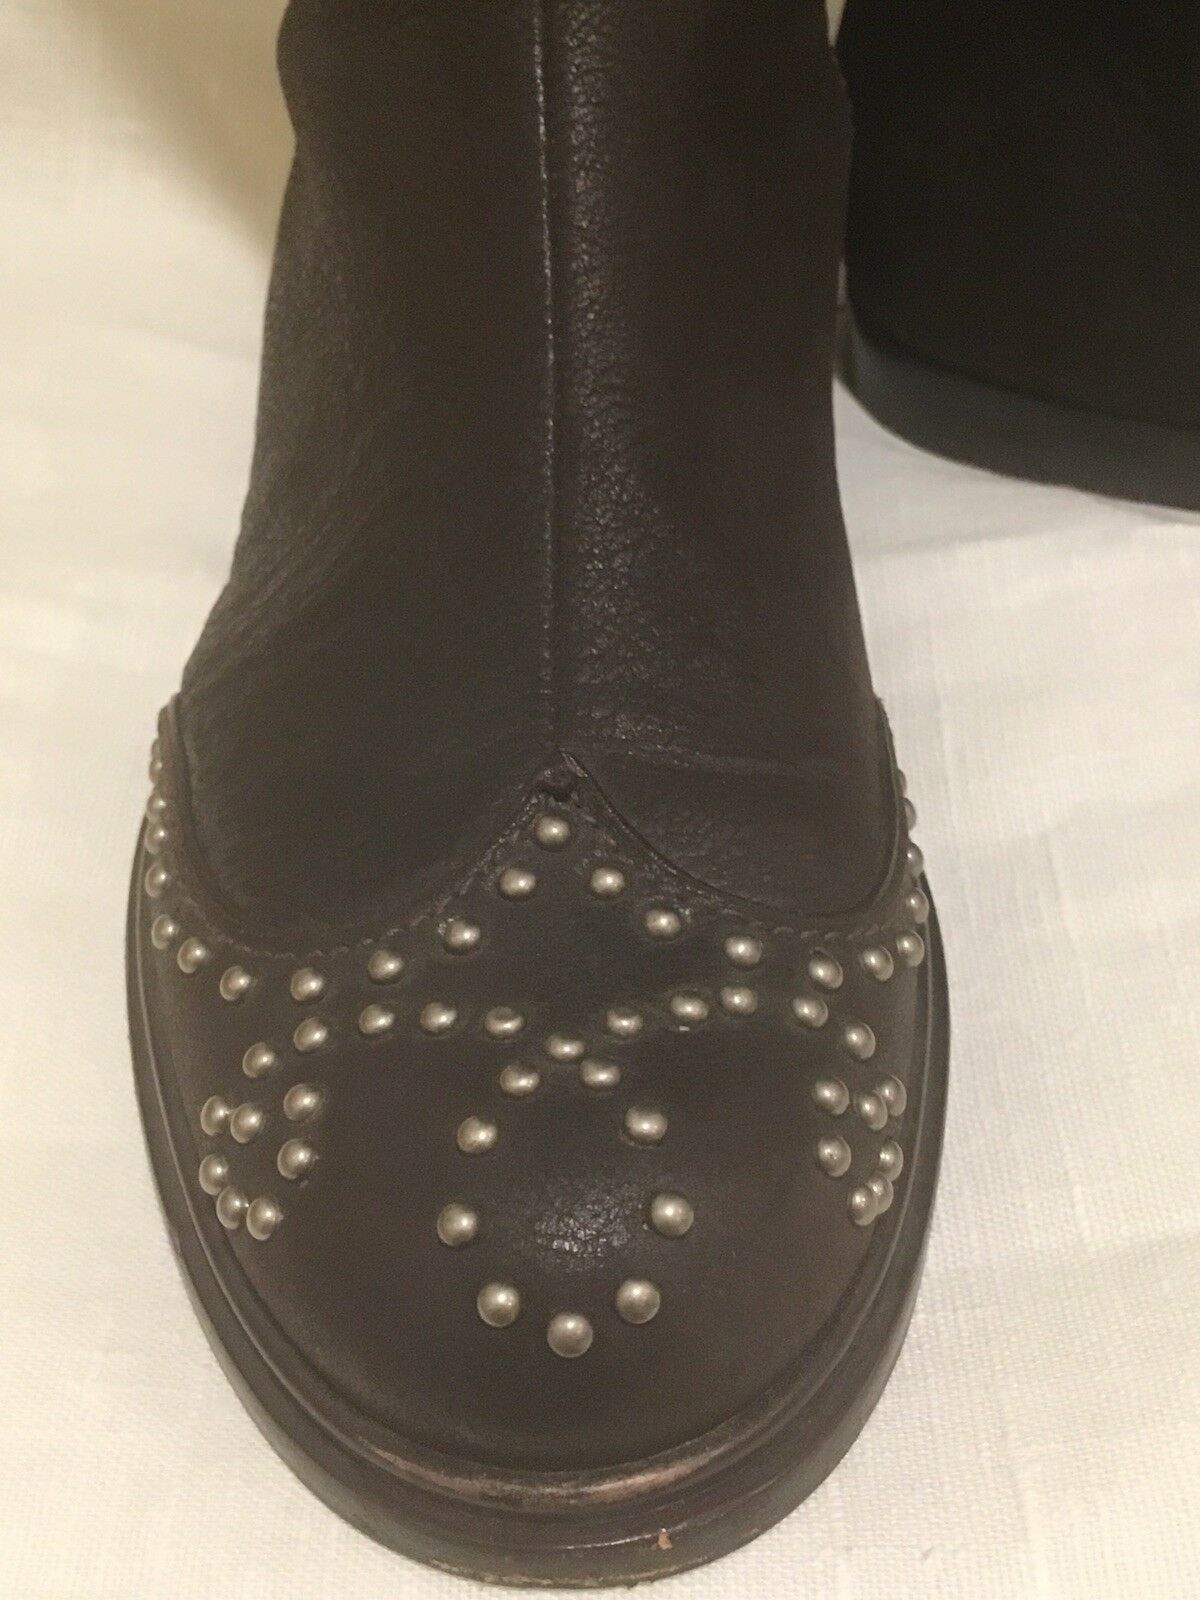 MIU MIU BROWN LEATHER STUDDED WORN TAI FLAT BOOT EXCELLENT WORN STUDDED ONCE SZ 9 f1f33c